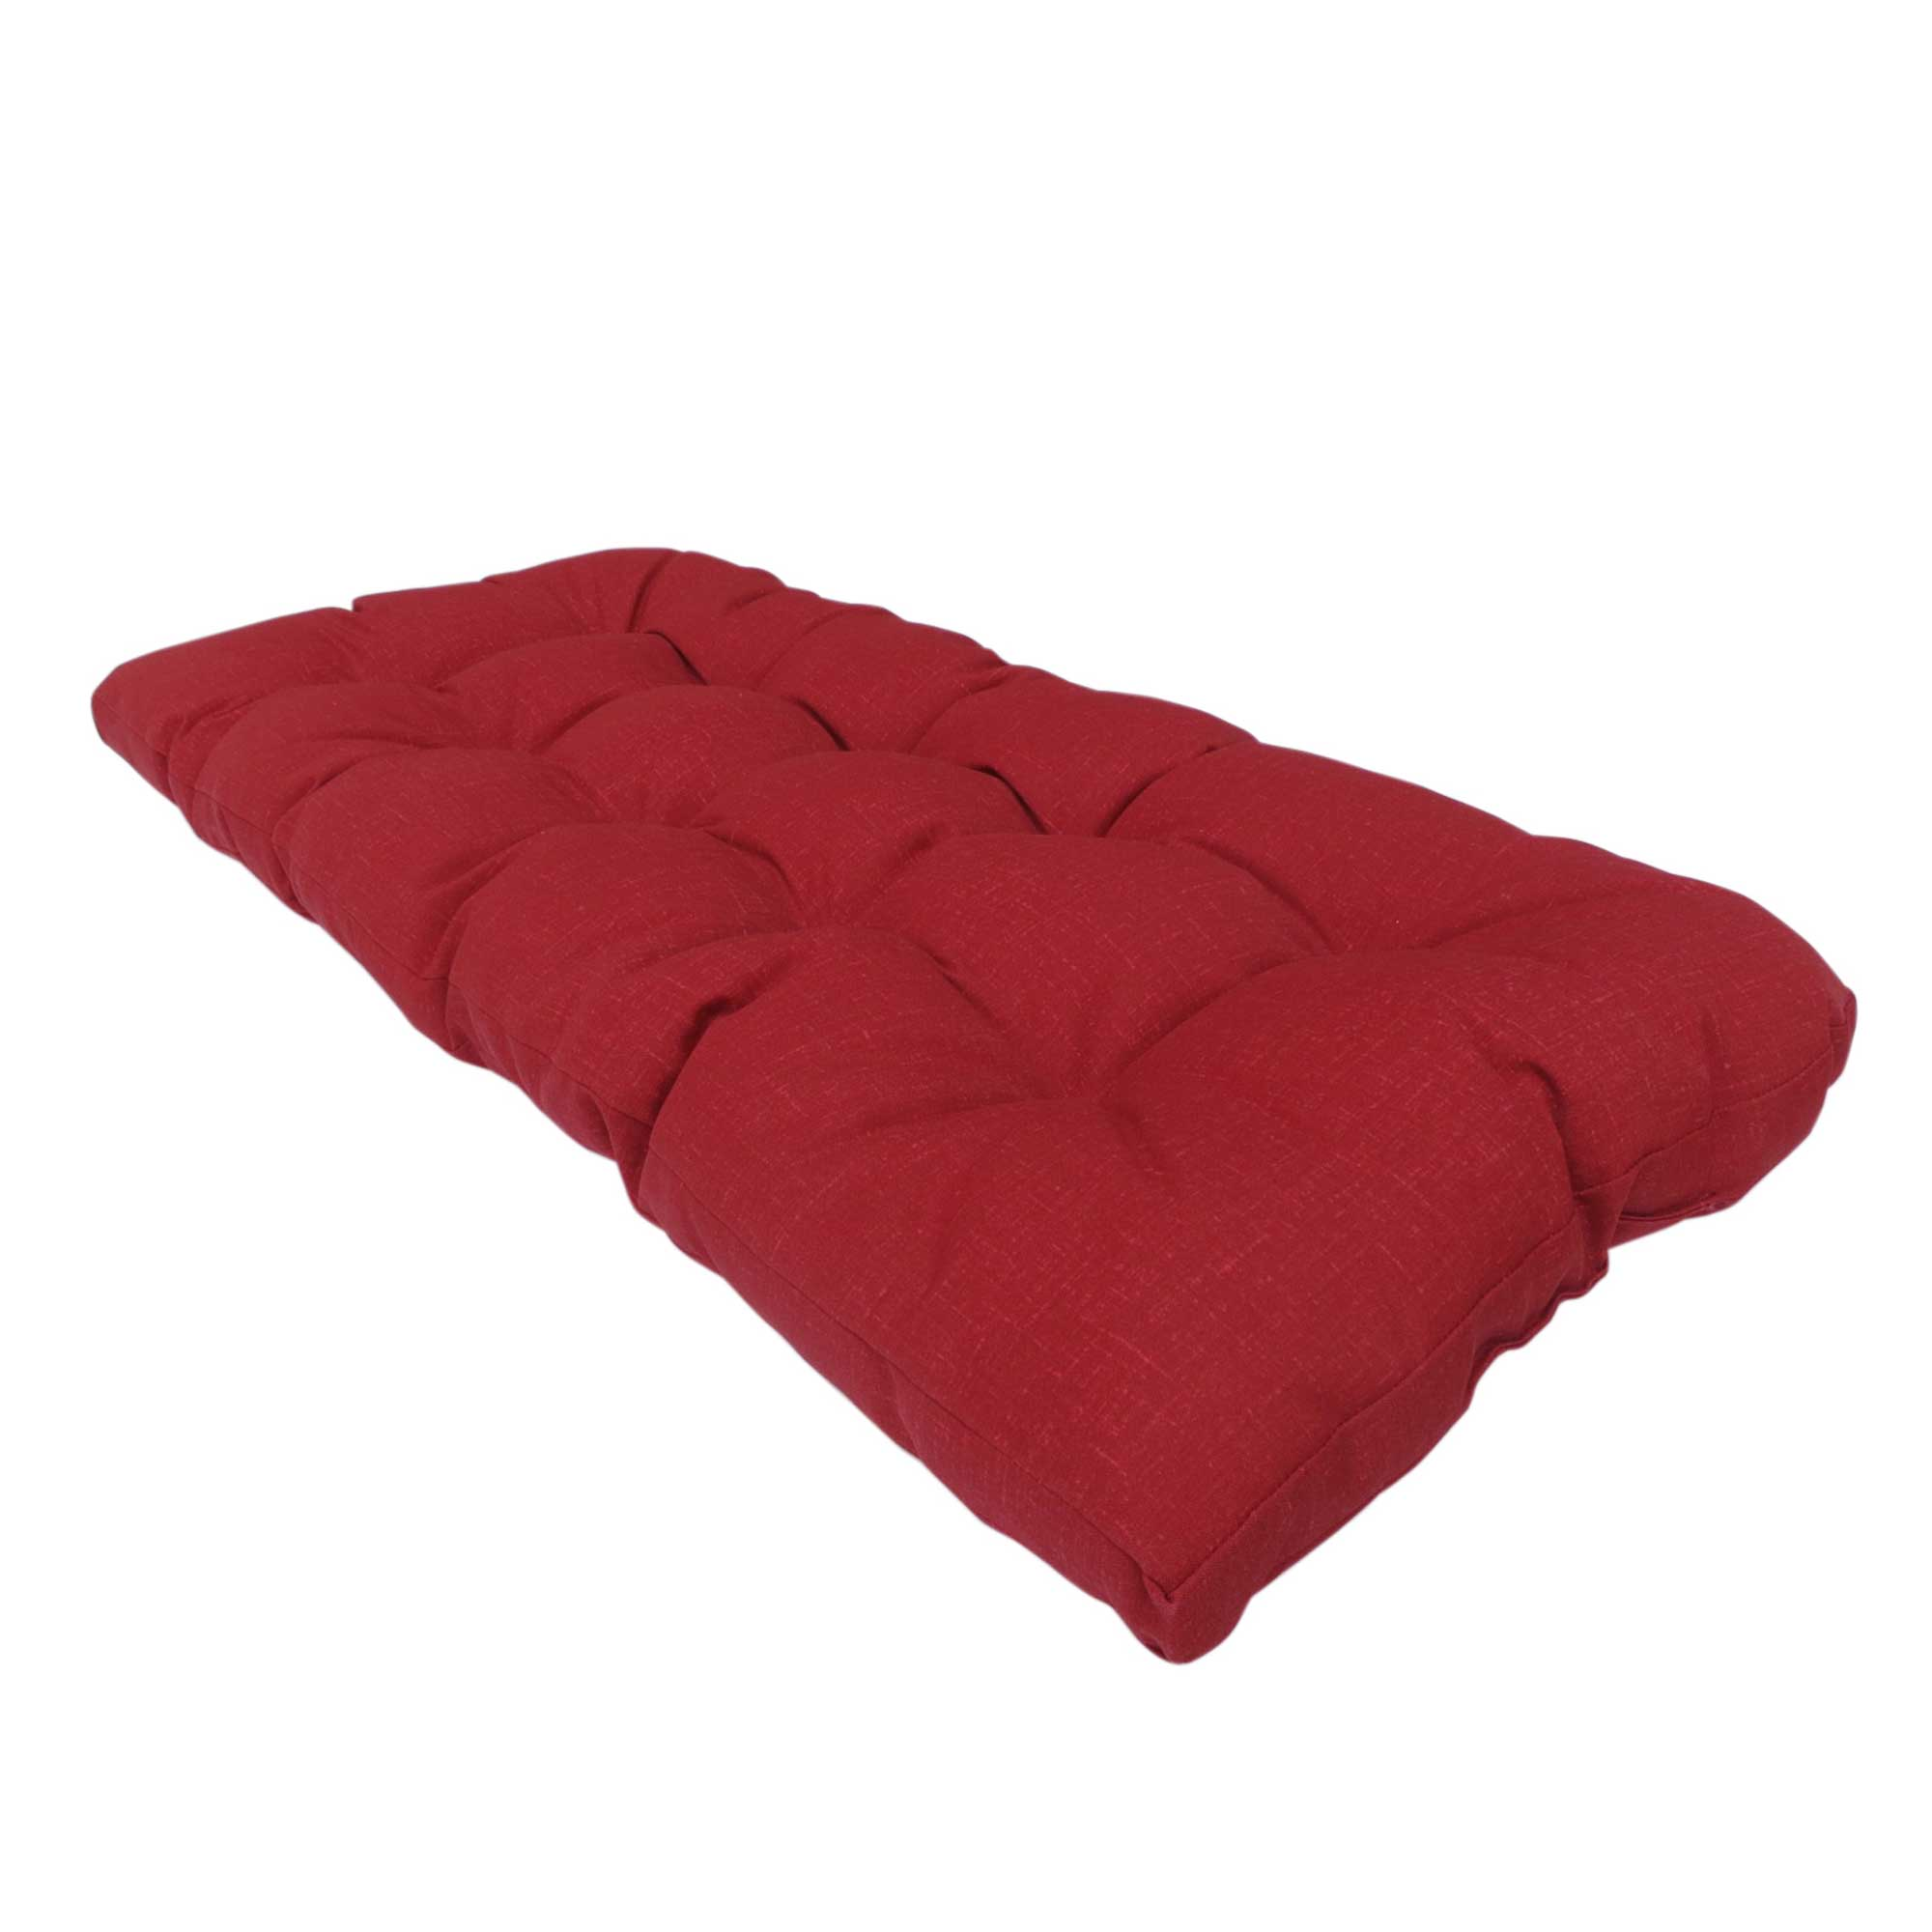 Details About Lovebird Outdoor Bench Cushion 145cm Red